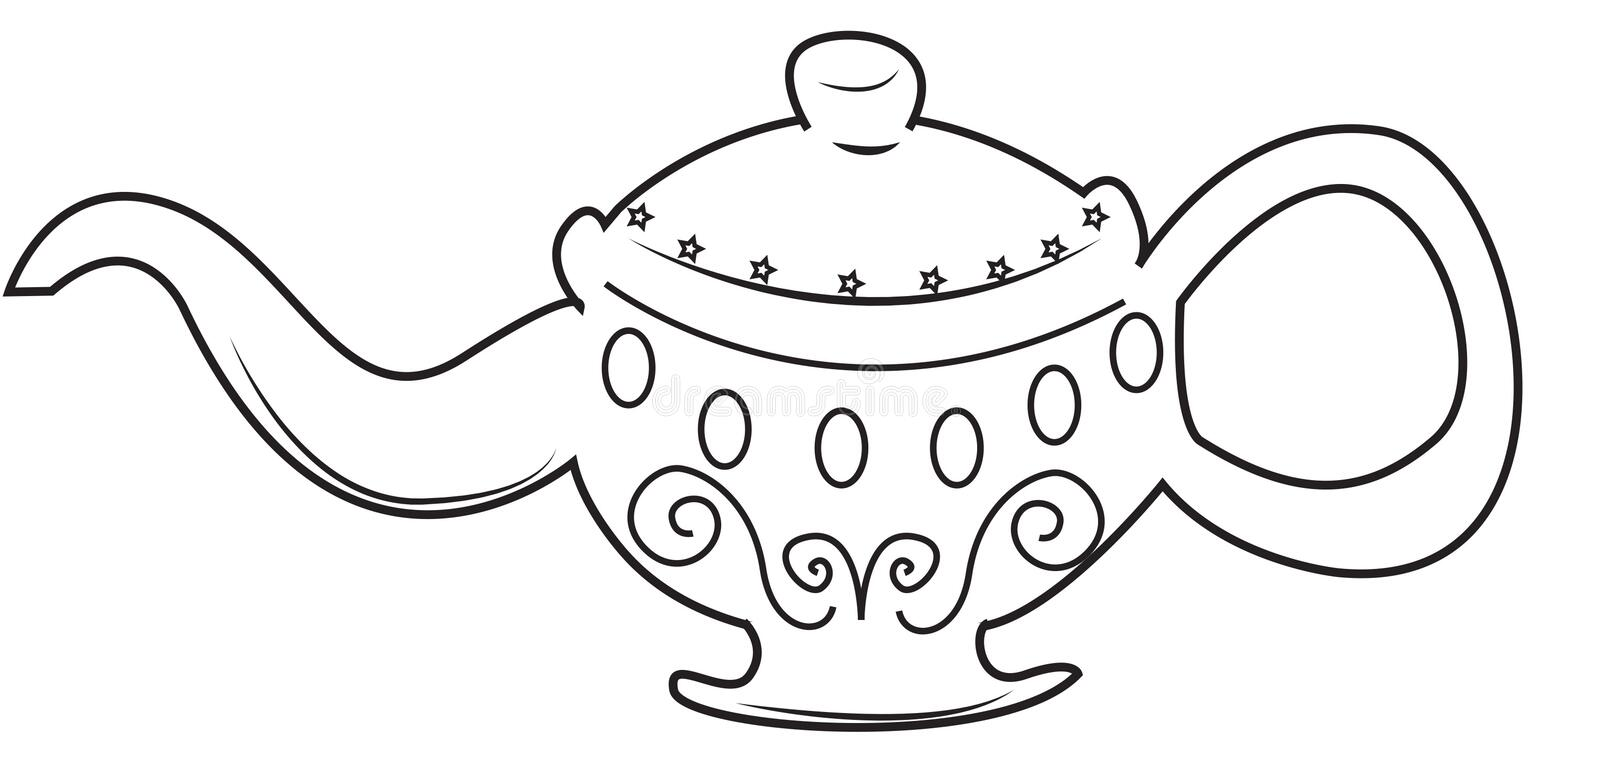 Lamp coloring page. Useful as coloring book for kids royalty free illustration